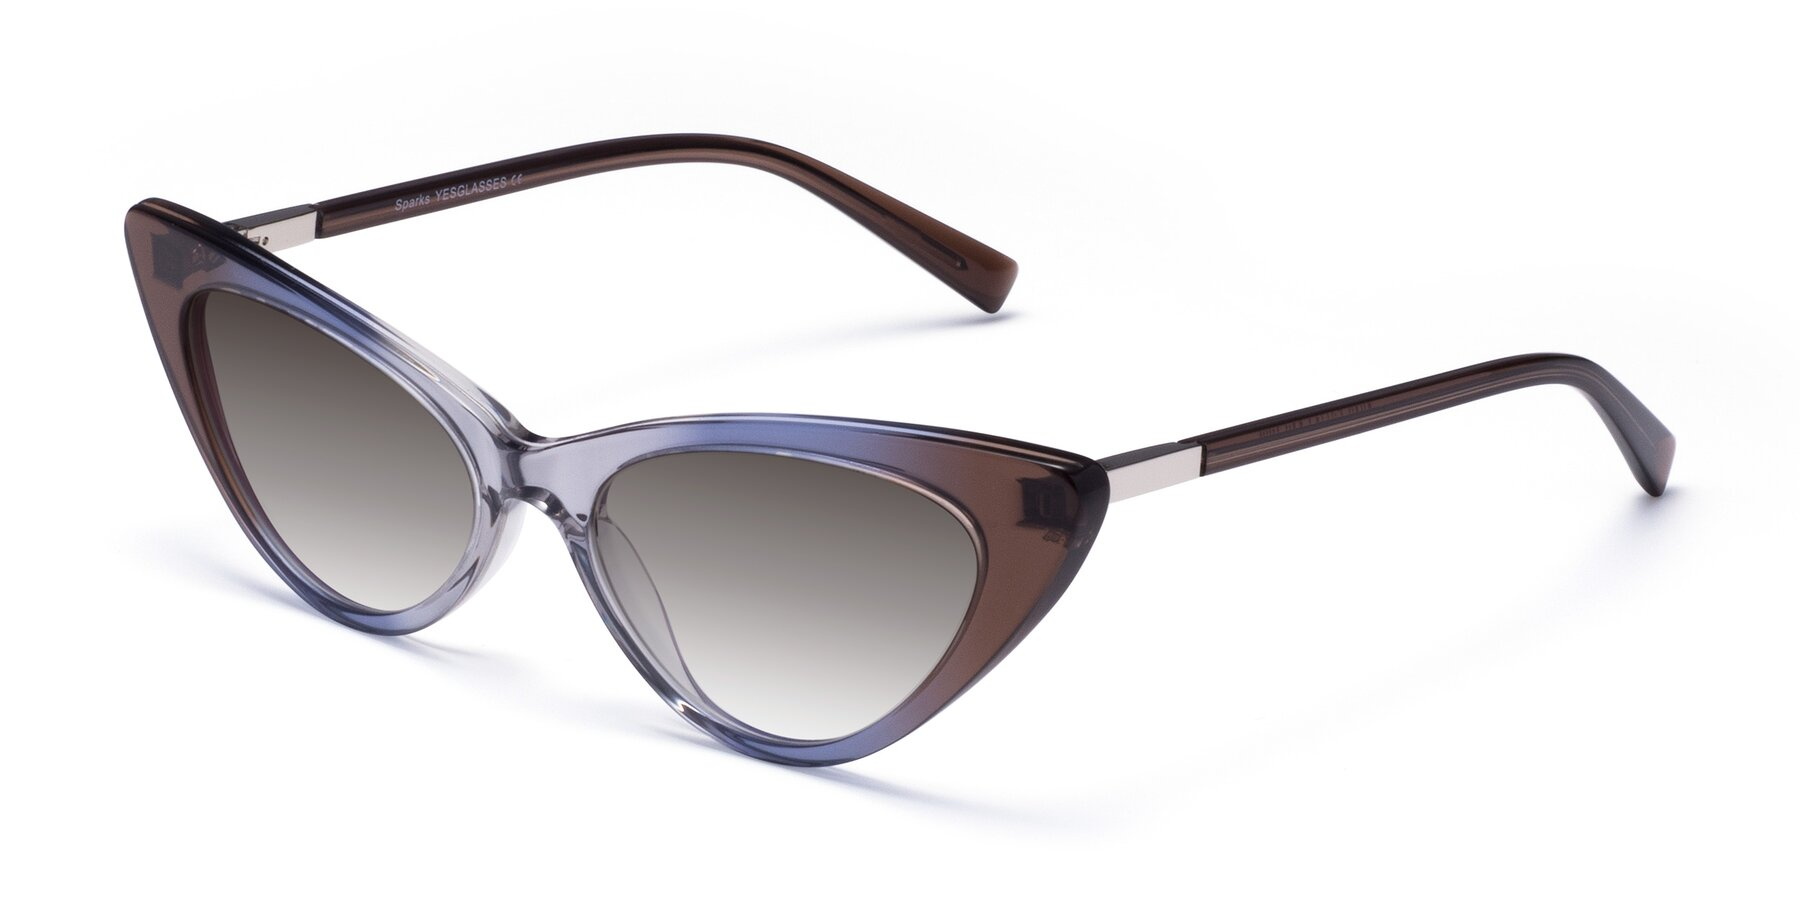 Angle of Sparks in Transparent Gradient Brown with Gray Gradient Lenses